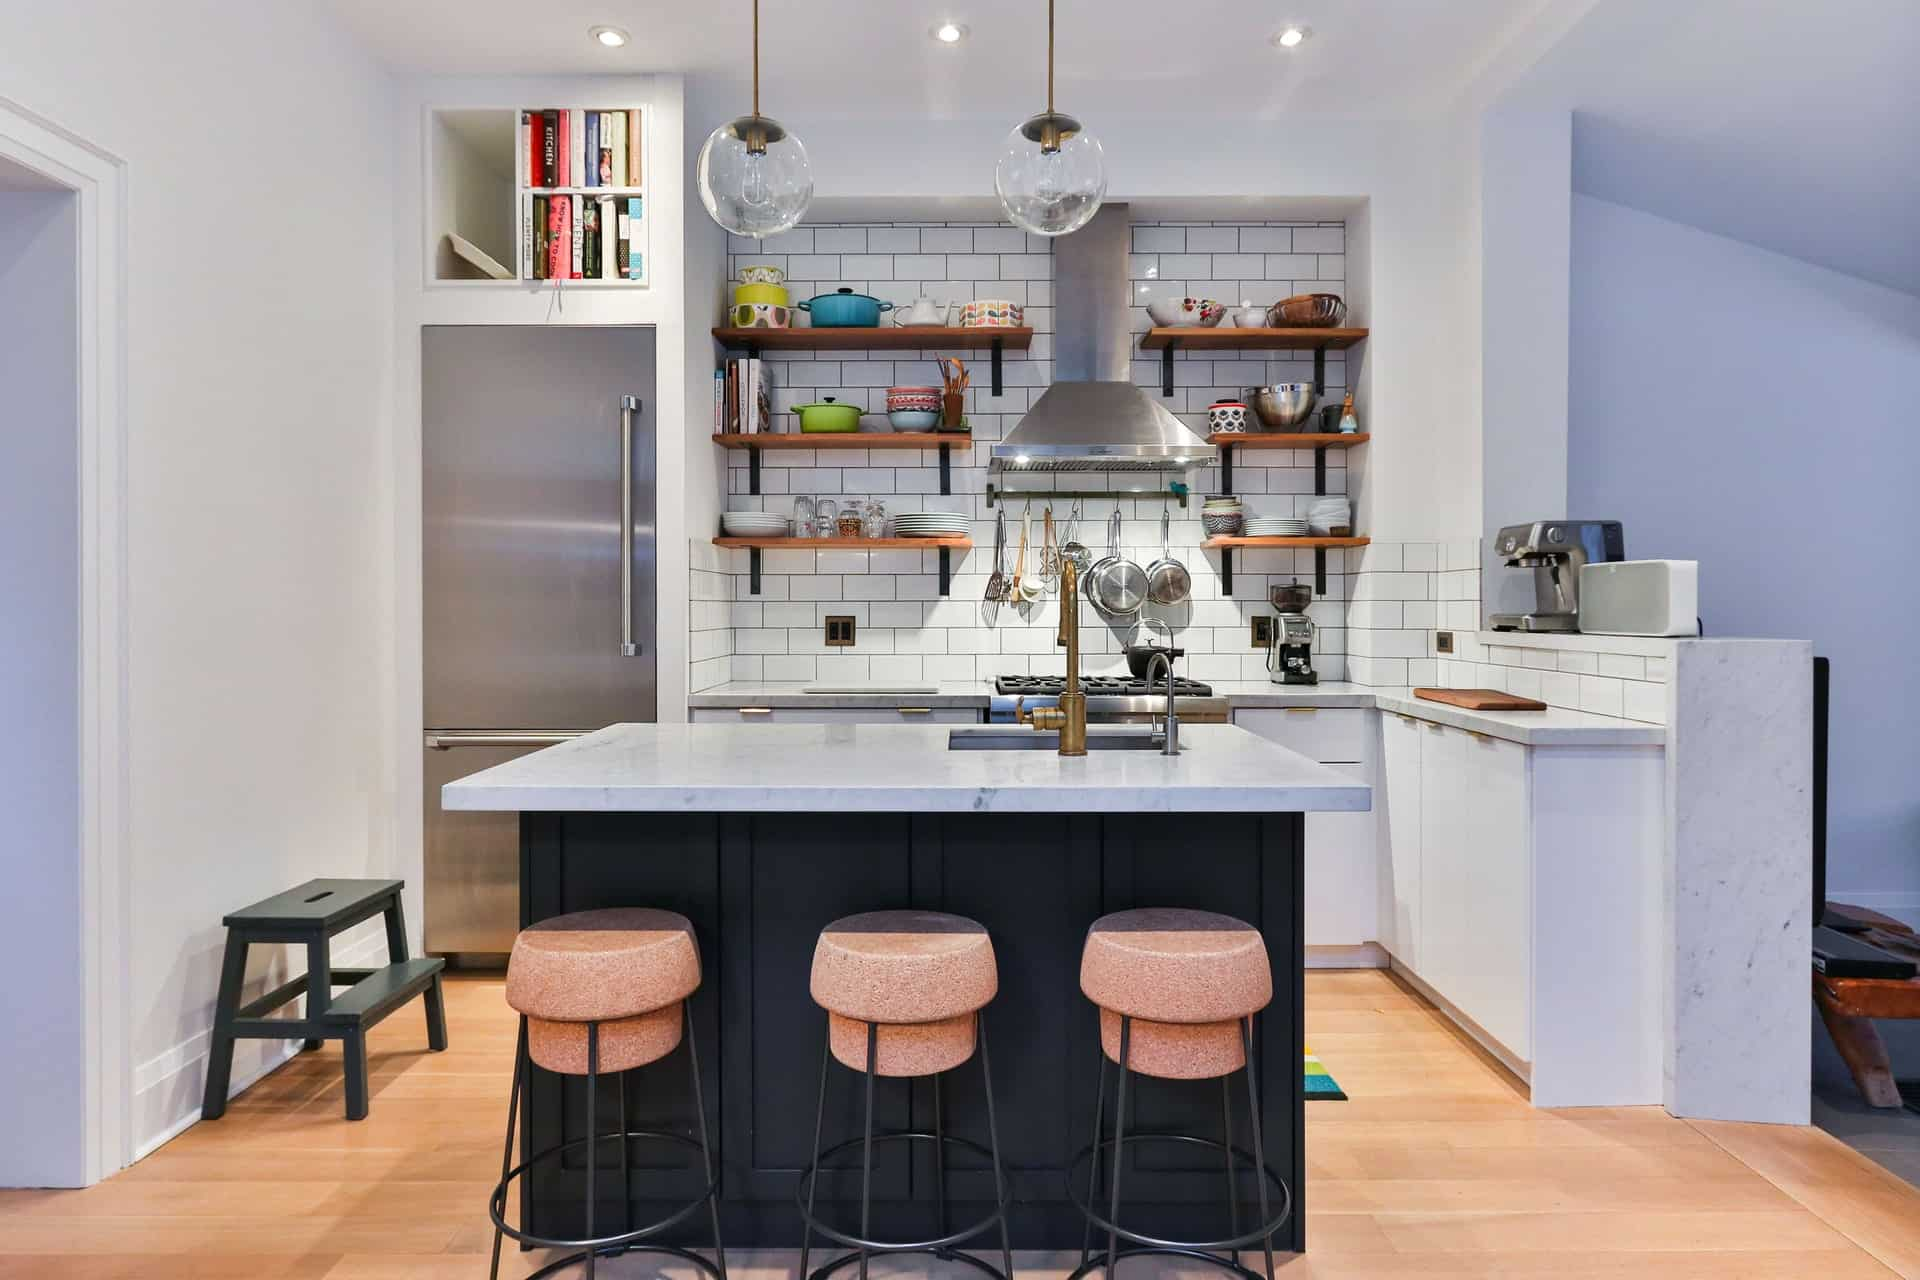 Open Shelving retro kitchen ideas